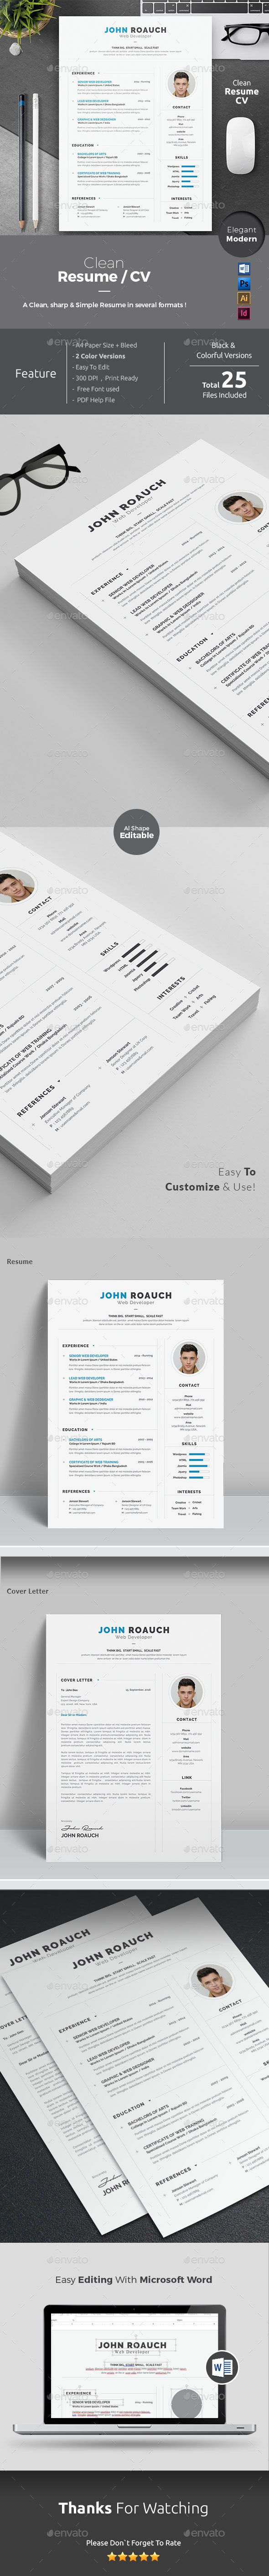 Nice 1 2 3 Nu Kapitel Resume Huge 1.5 Button Template Round 10 Tips For Writing A Good Resume 100 Chart Template Young 1096 Template Pink1099 Template 25  Best Ideas About Resume Words On Pinterest | Resume, Resume ..